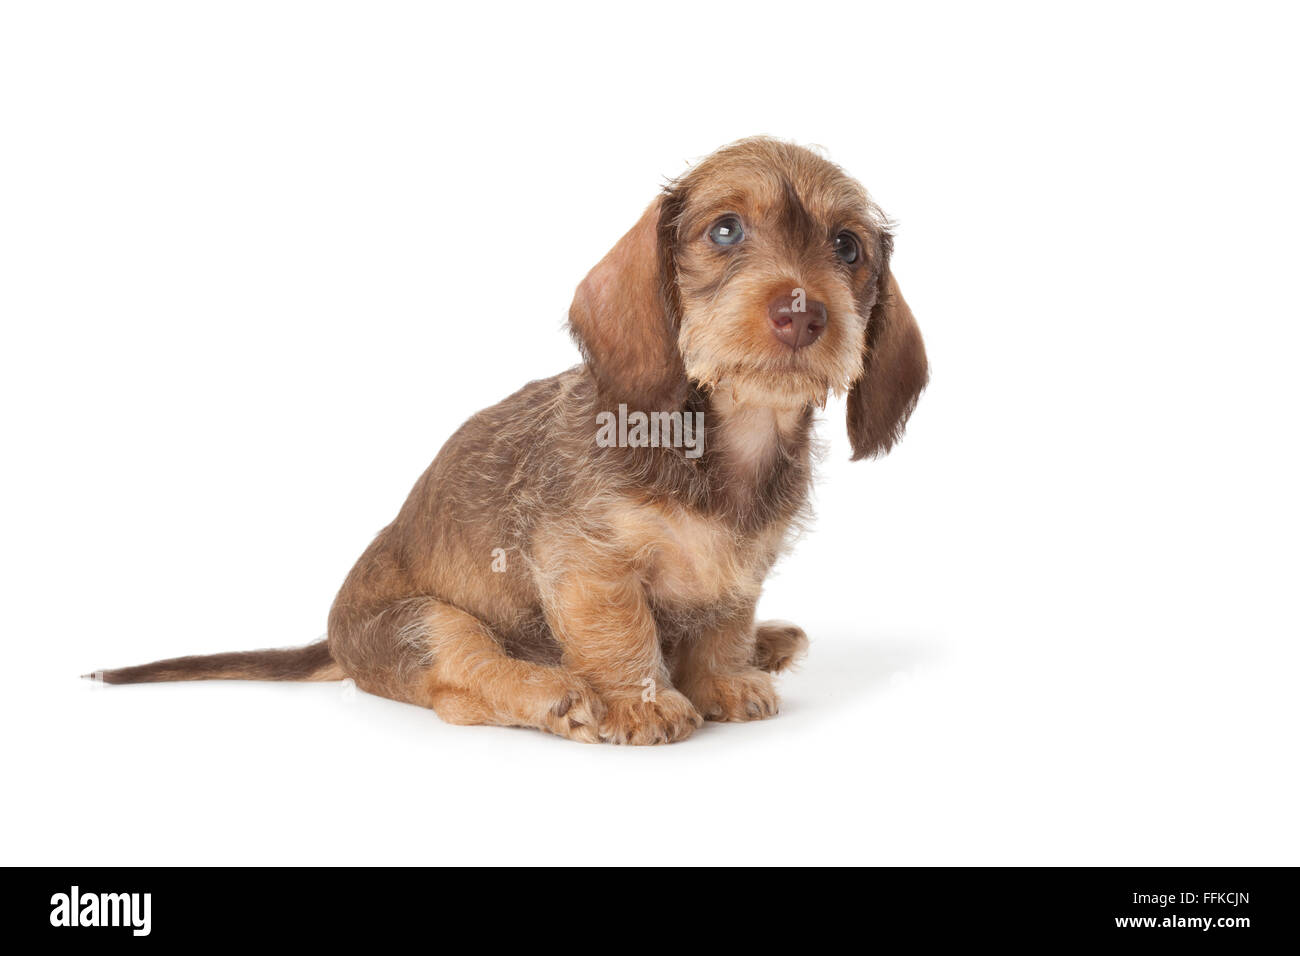 Cute wire-haired dachshund puppy on white background - Stock Image